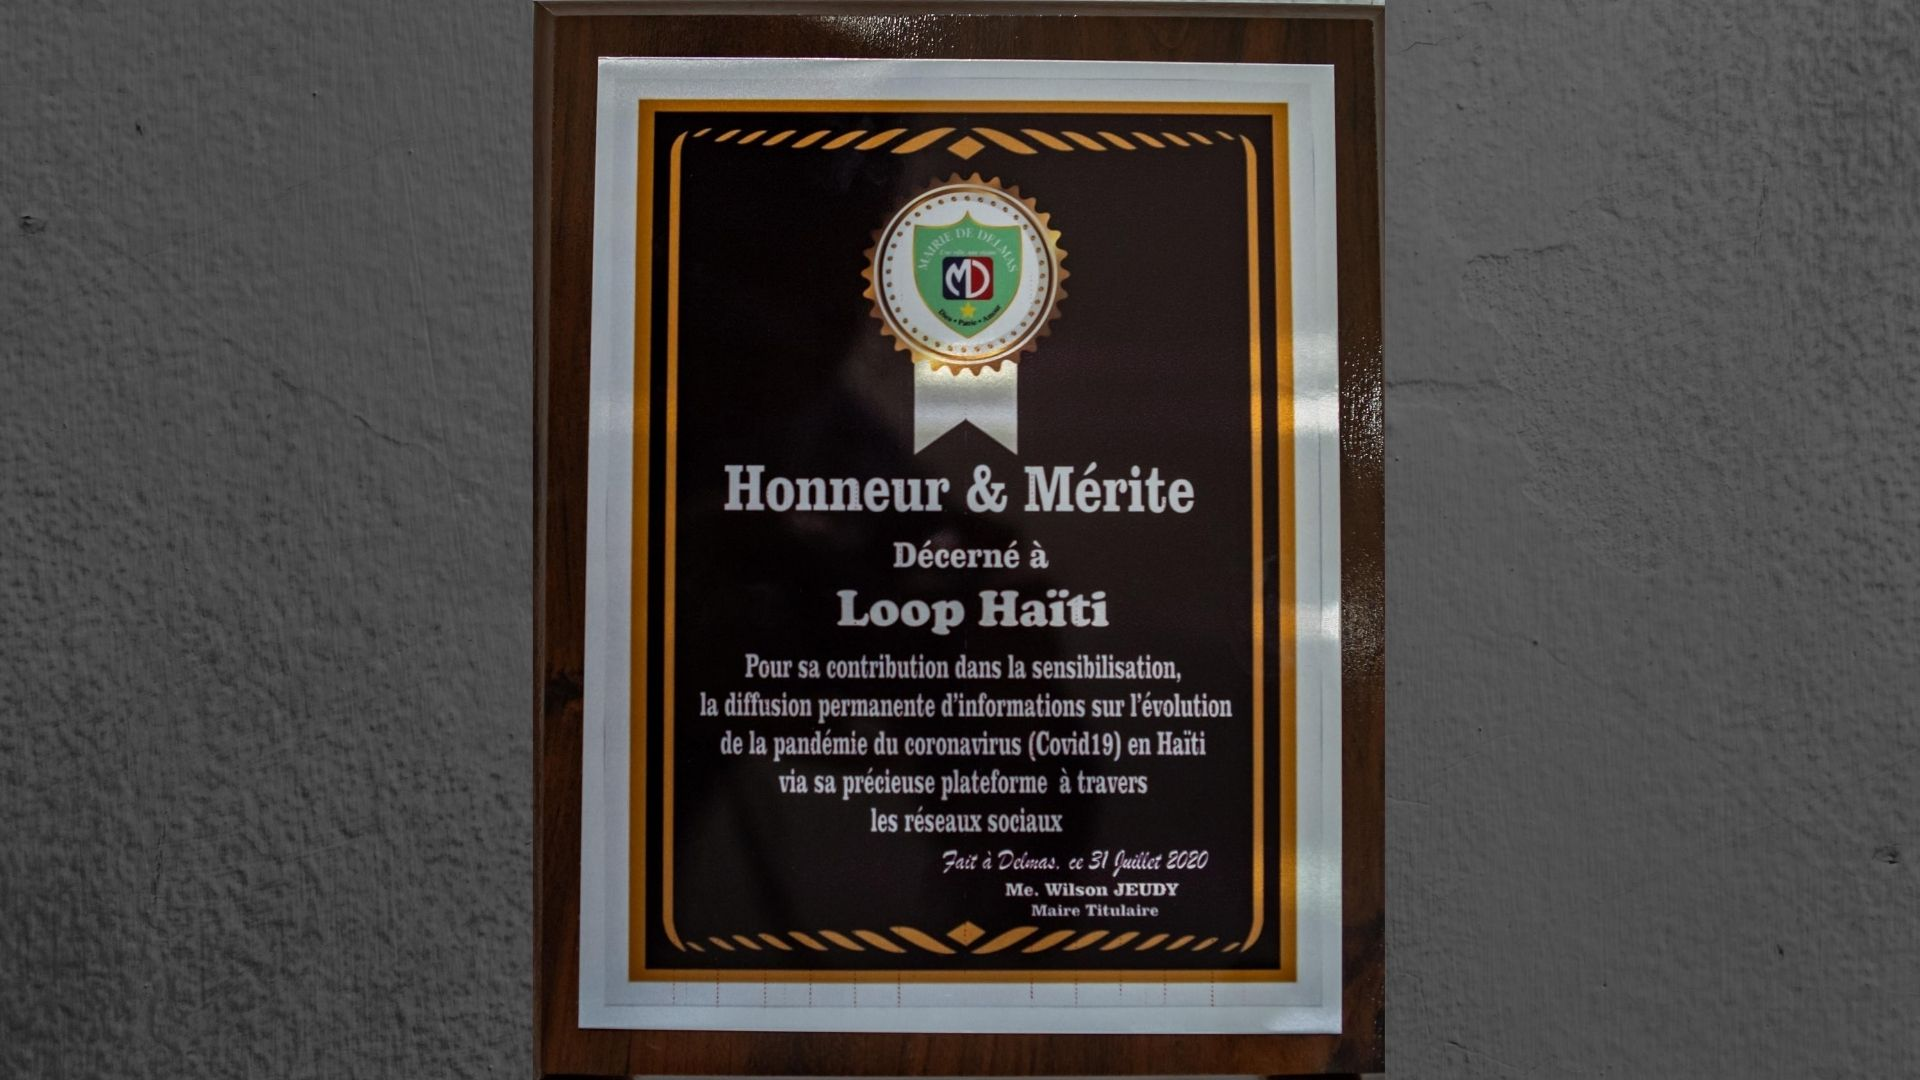 The plaque revealed in Loop Haiti's honour by the Delmas Town Hall (Photo: Maxime Télémaque)